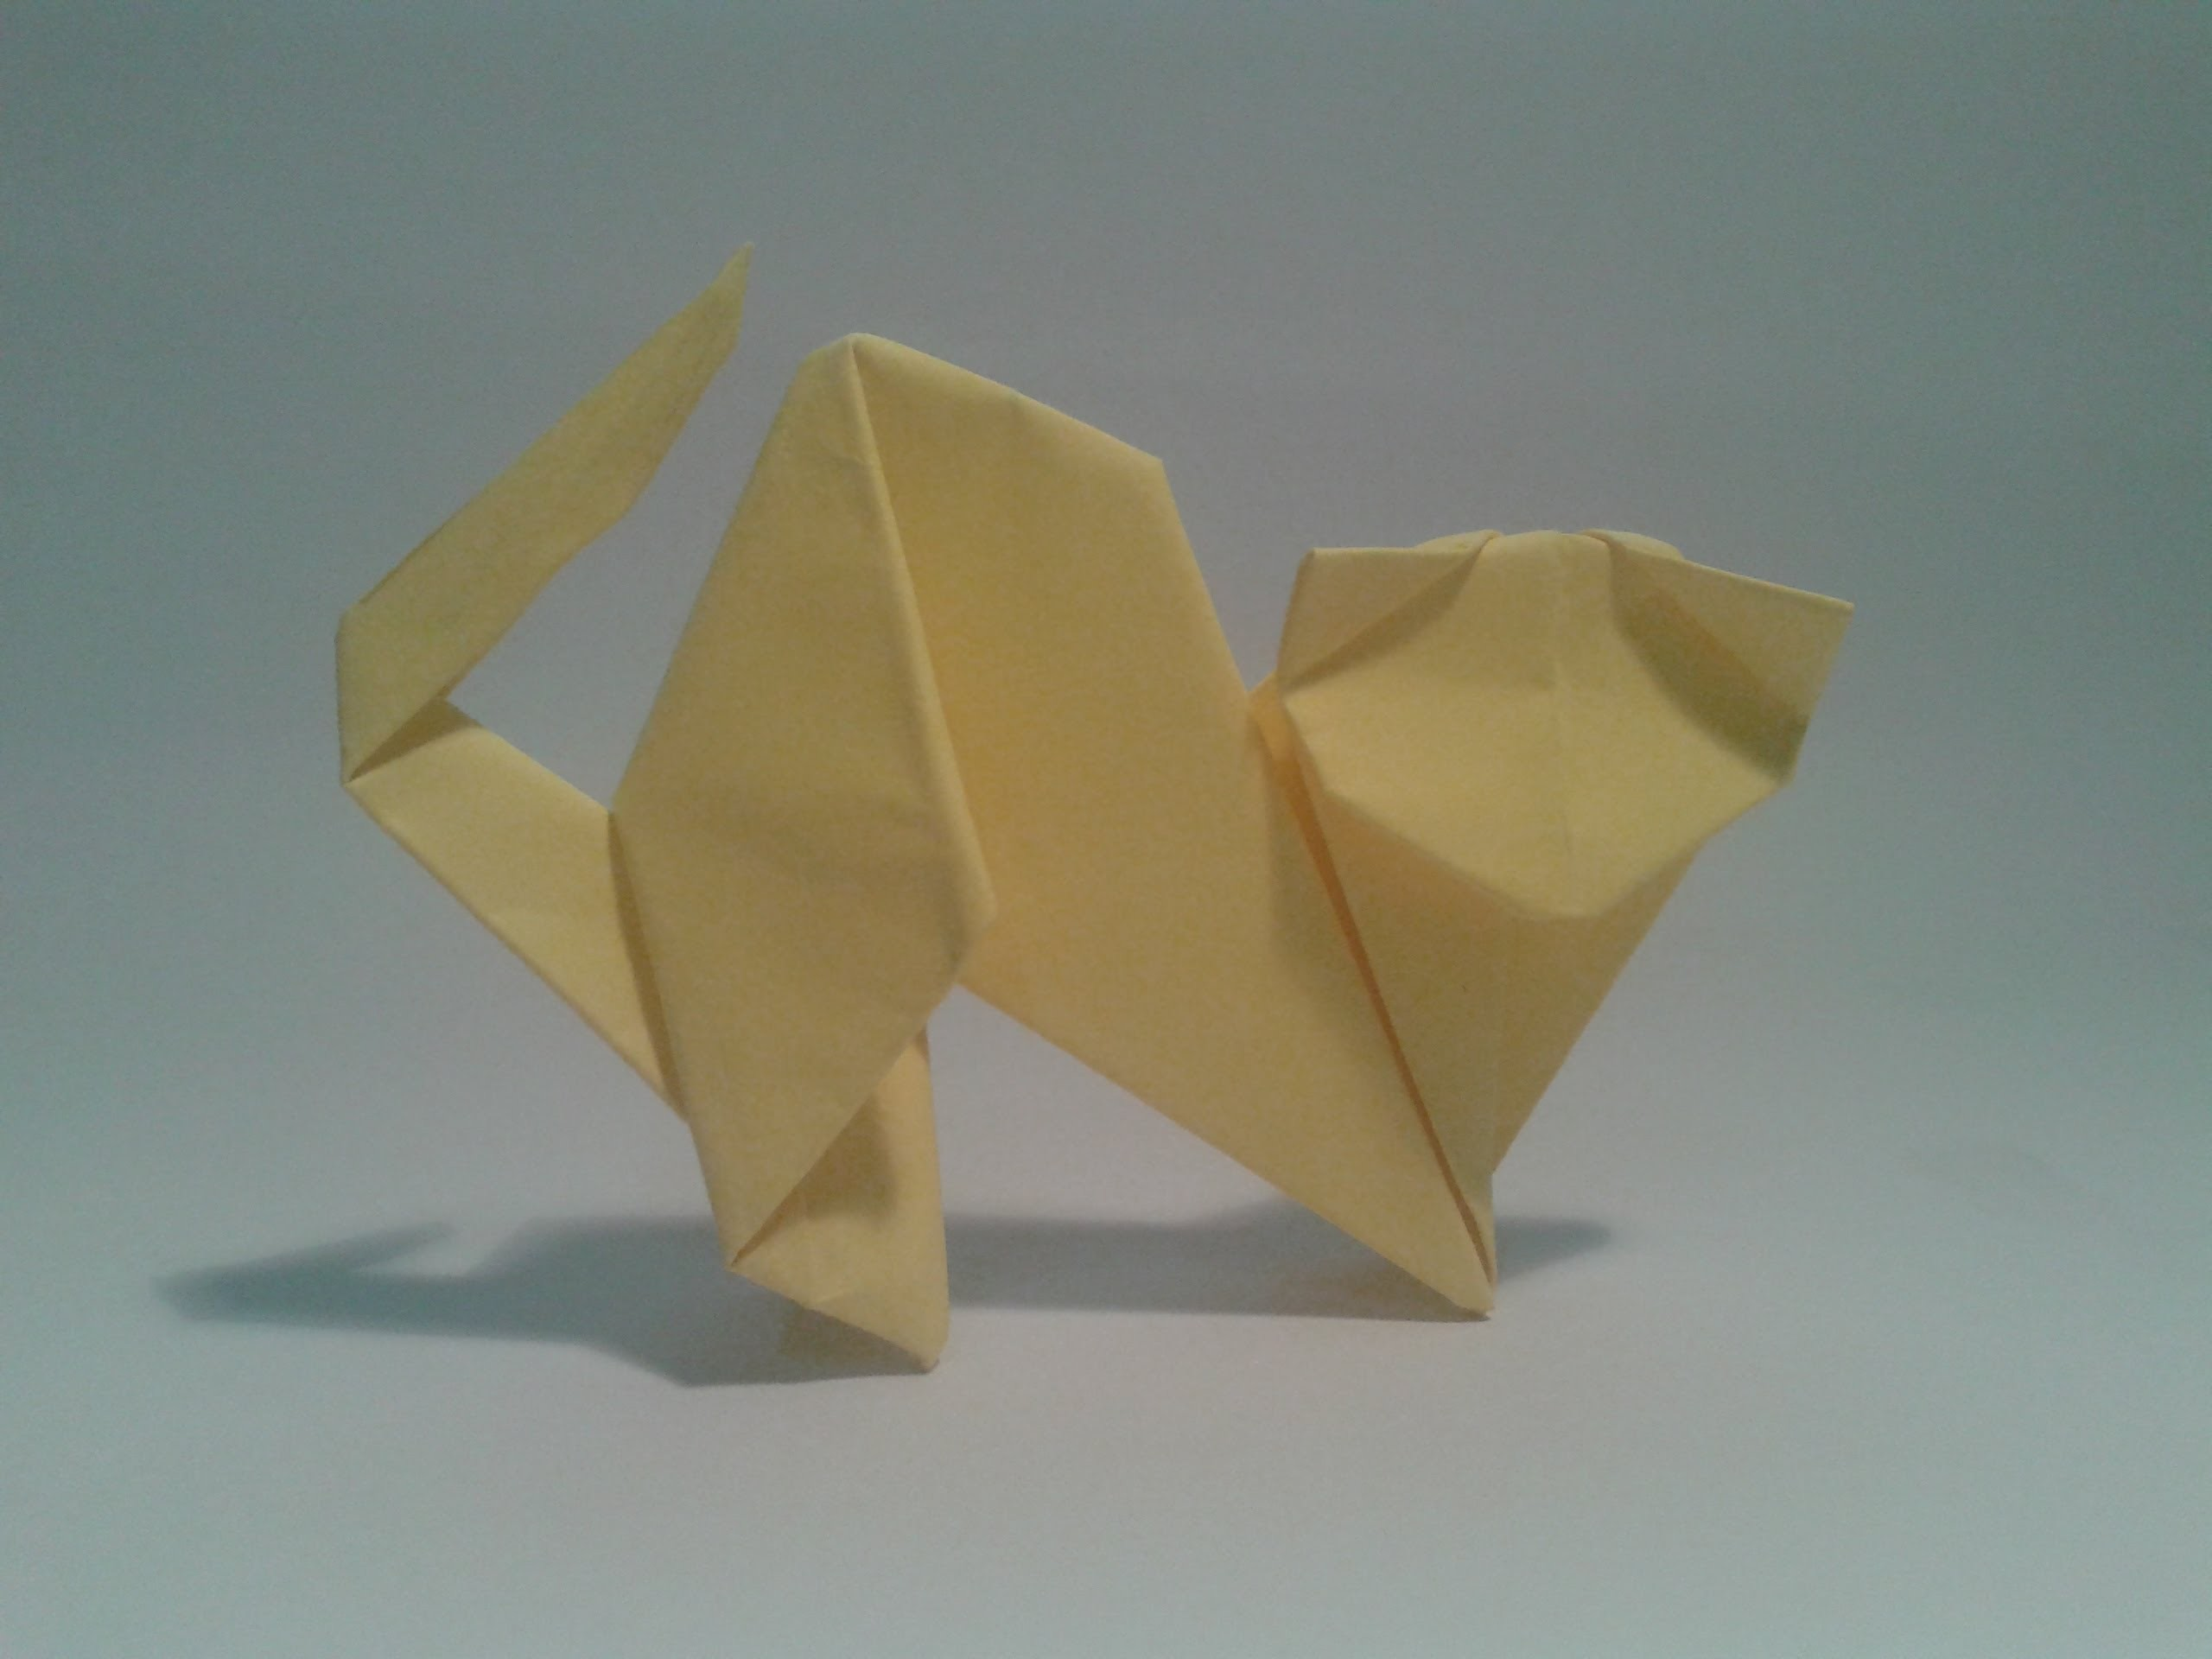 Origami - How to make an easy cat